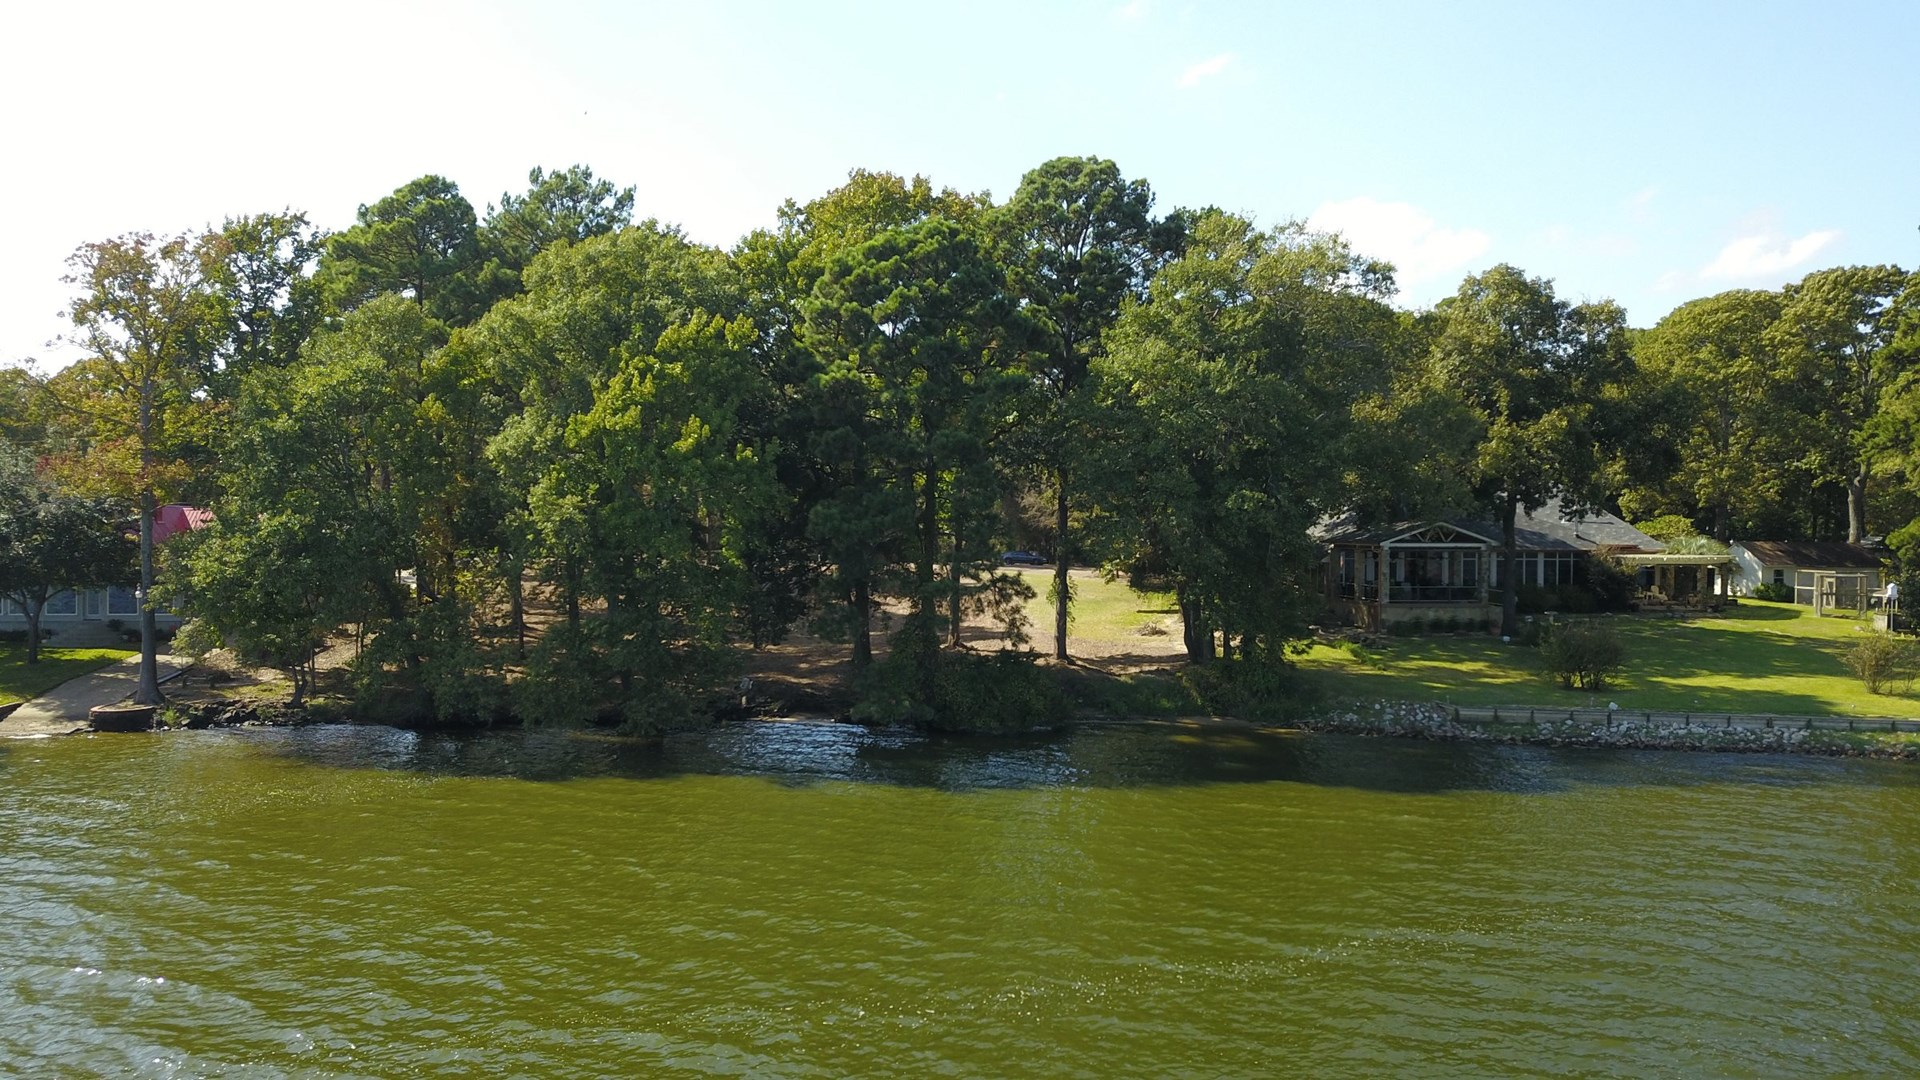 WATERFRONT LOTS FOR SALE | LAKE PALESTINE REAL ESTATE